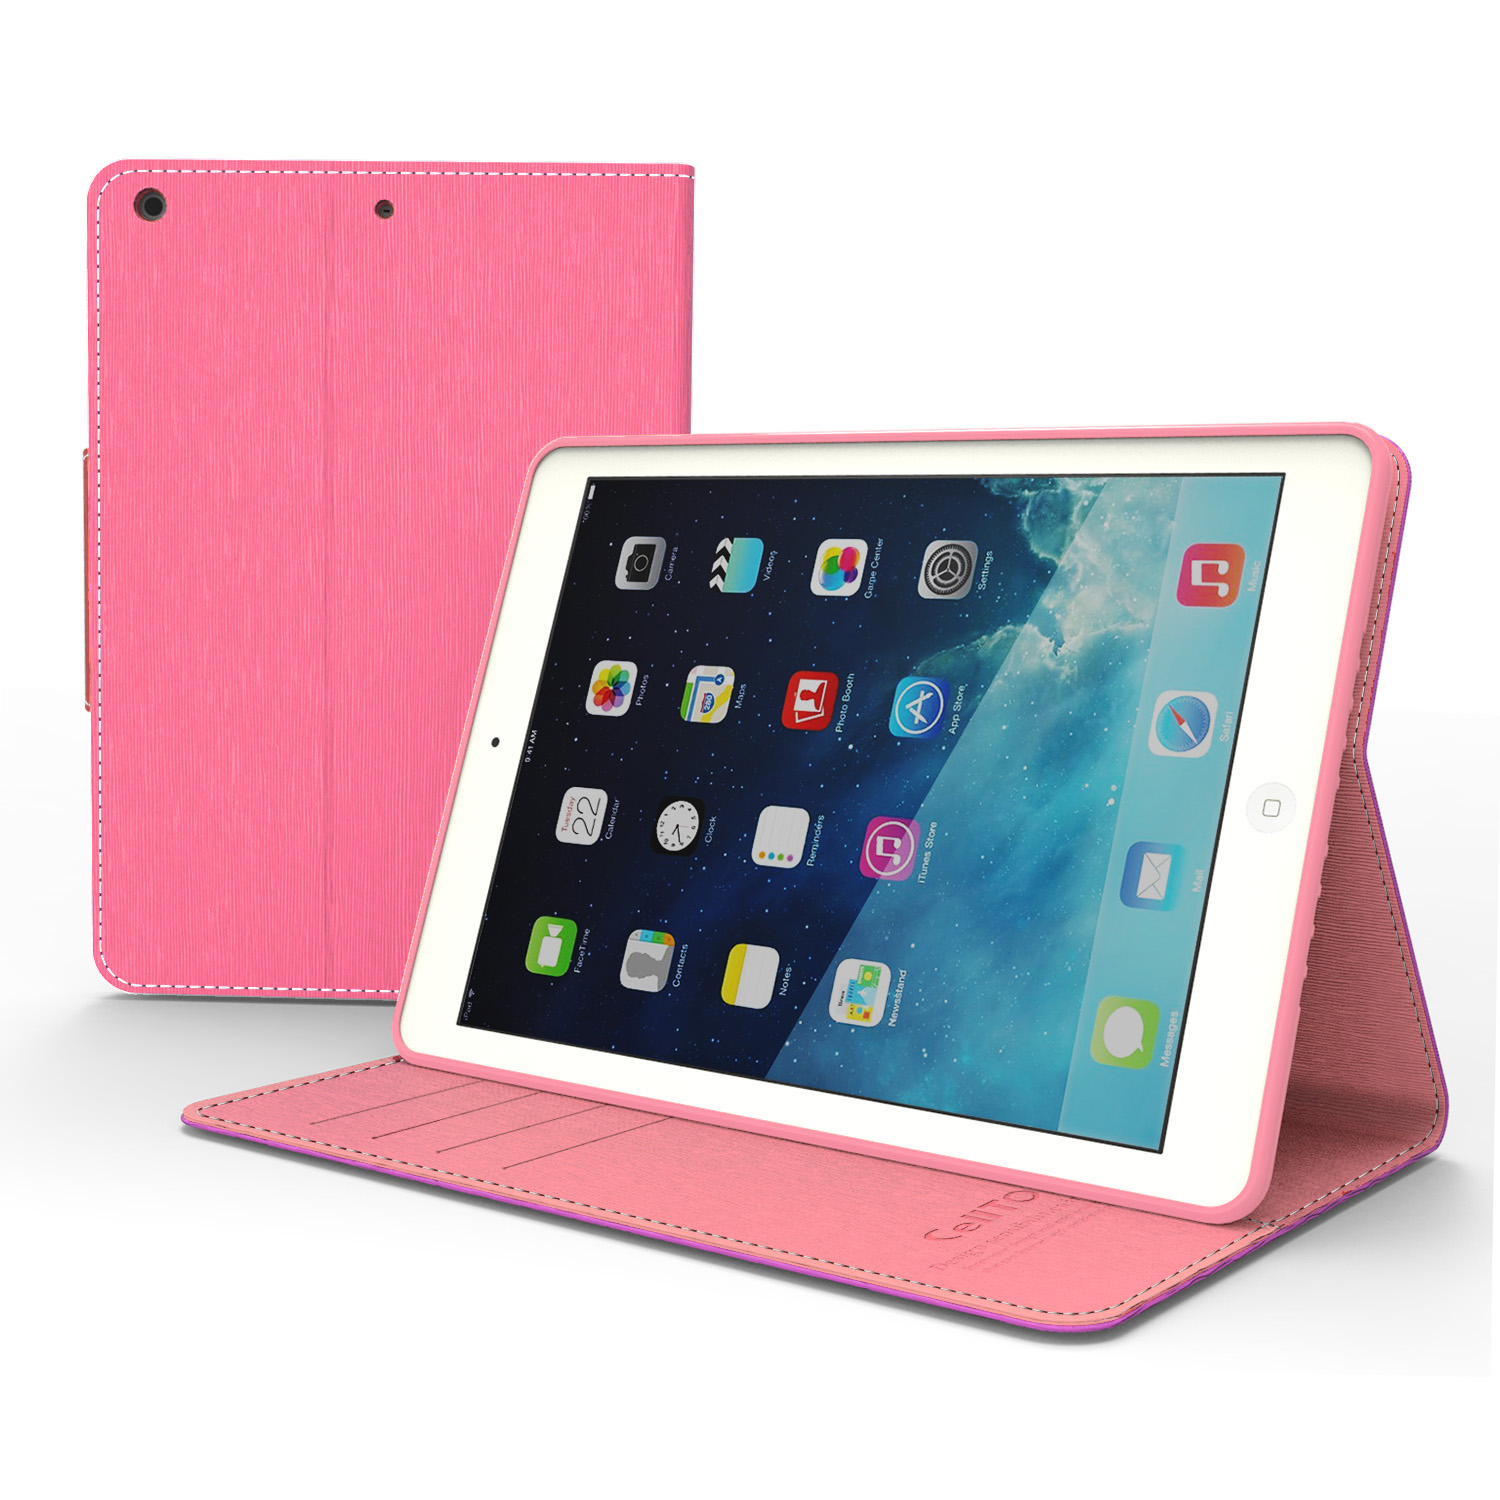 Made for Apple iPad Air Hot Pink/ Baby Pink  Faux Leather Diary Flip Case w/ ID Slots, Bill Fold, Magnetic Closure by Redshield